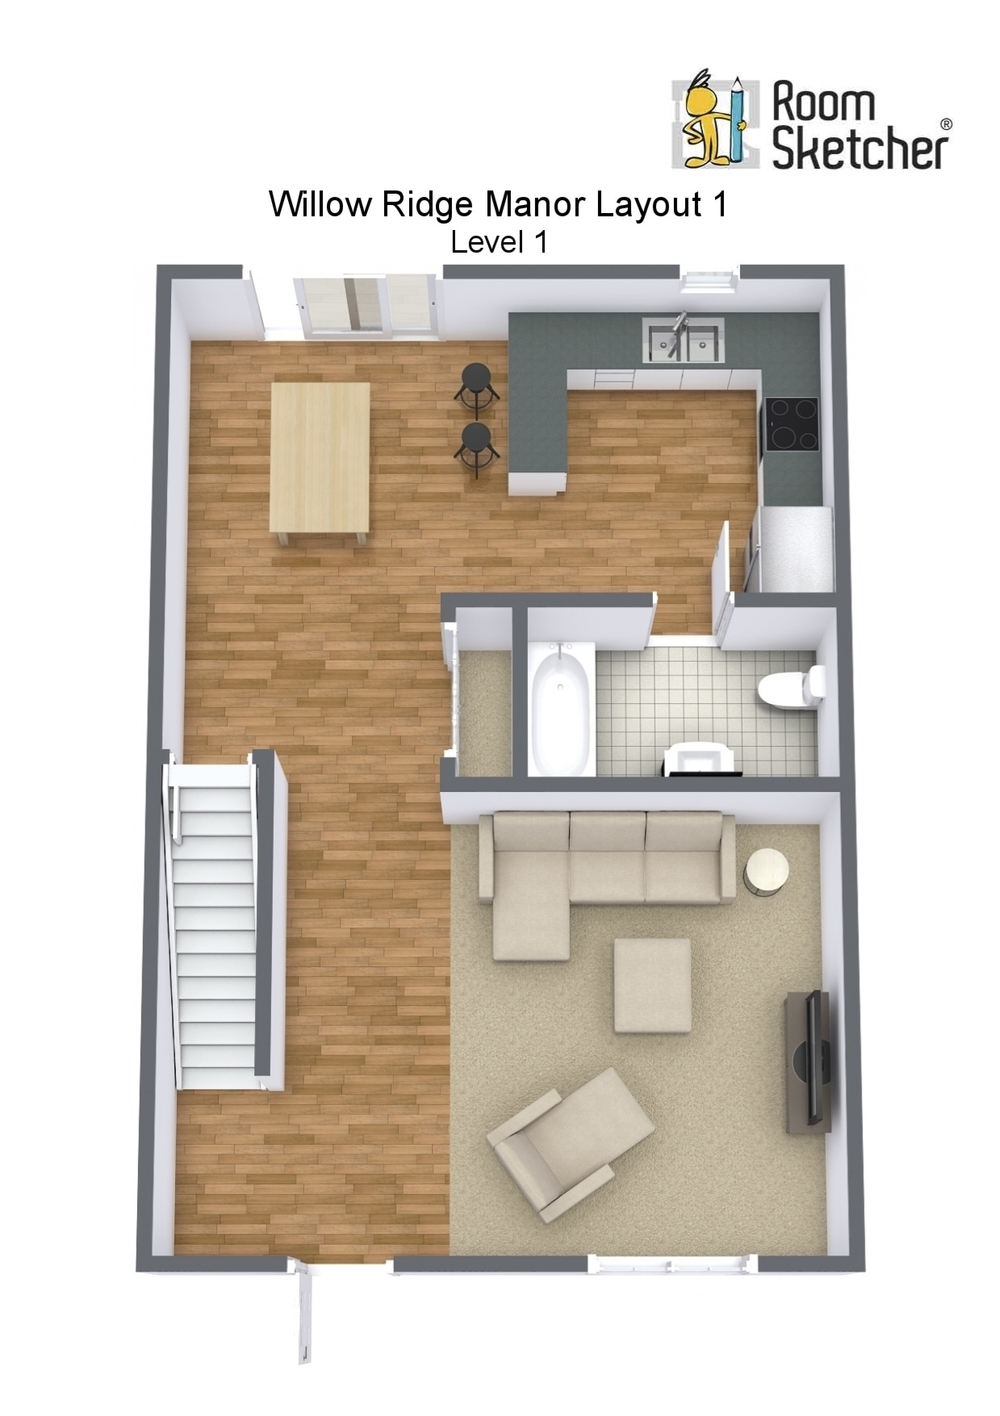 Floorplan letterhead - Willow Ridge Manor Layout 1 - Level 1 - 3D Floor Plan.jpg